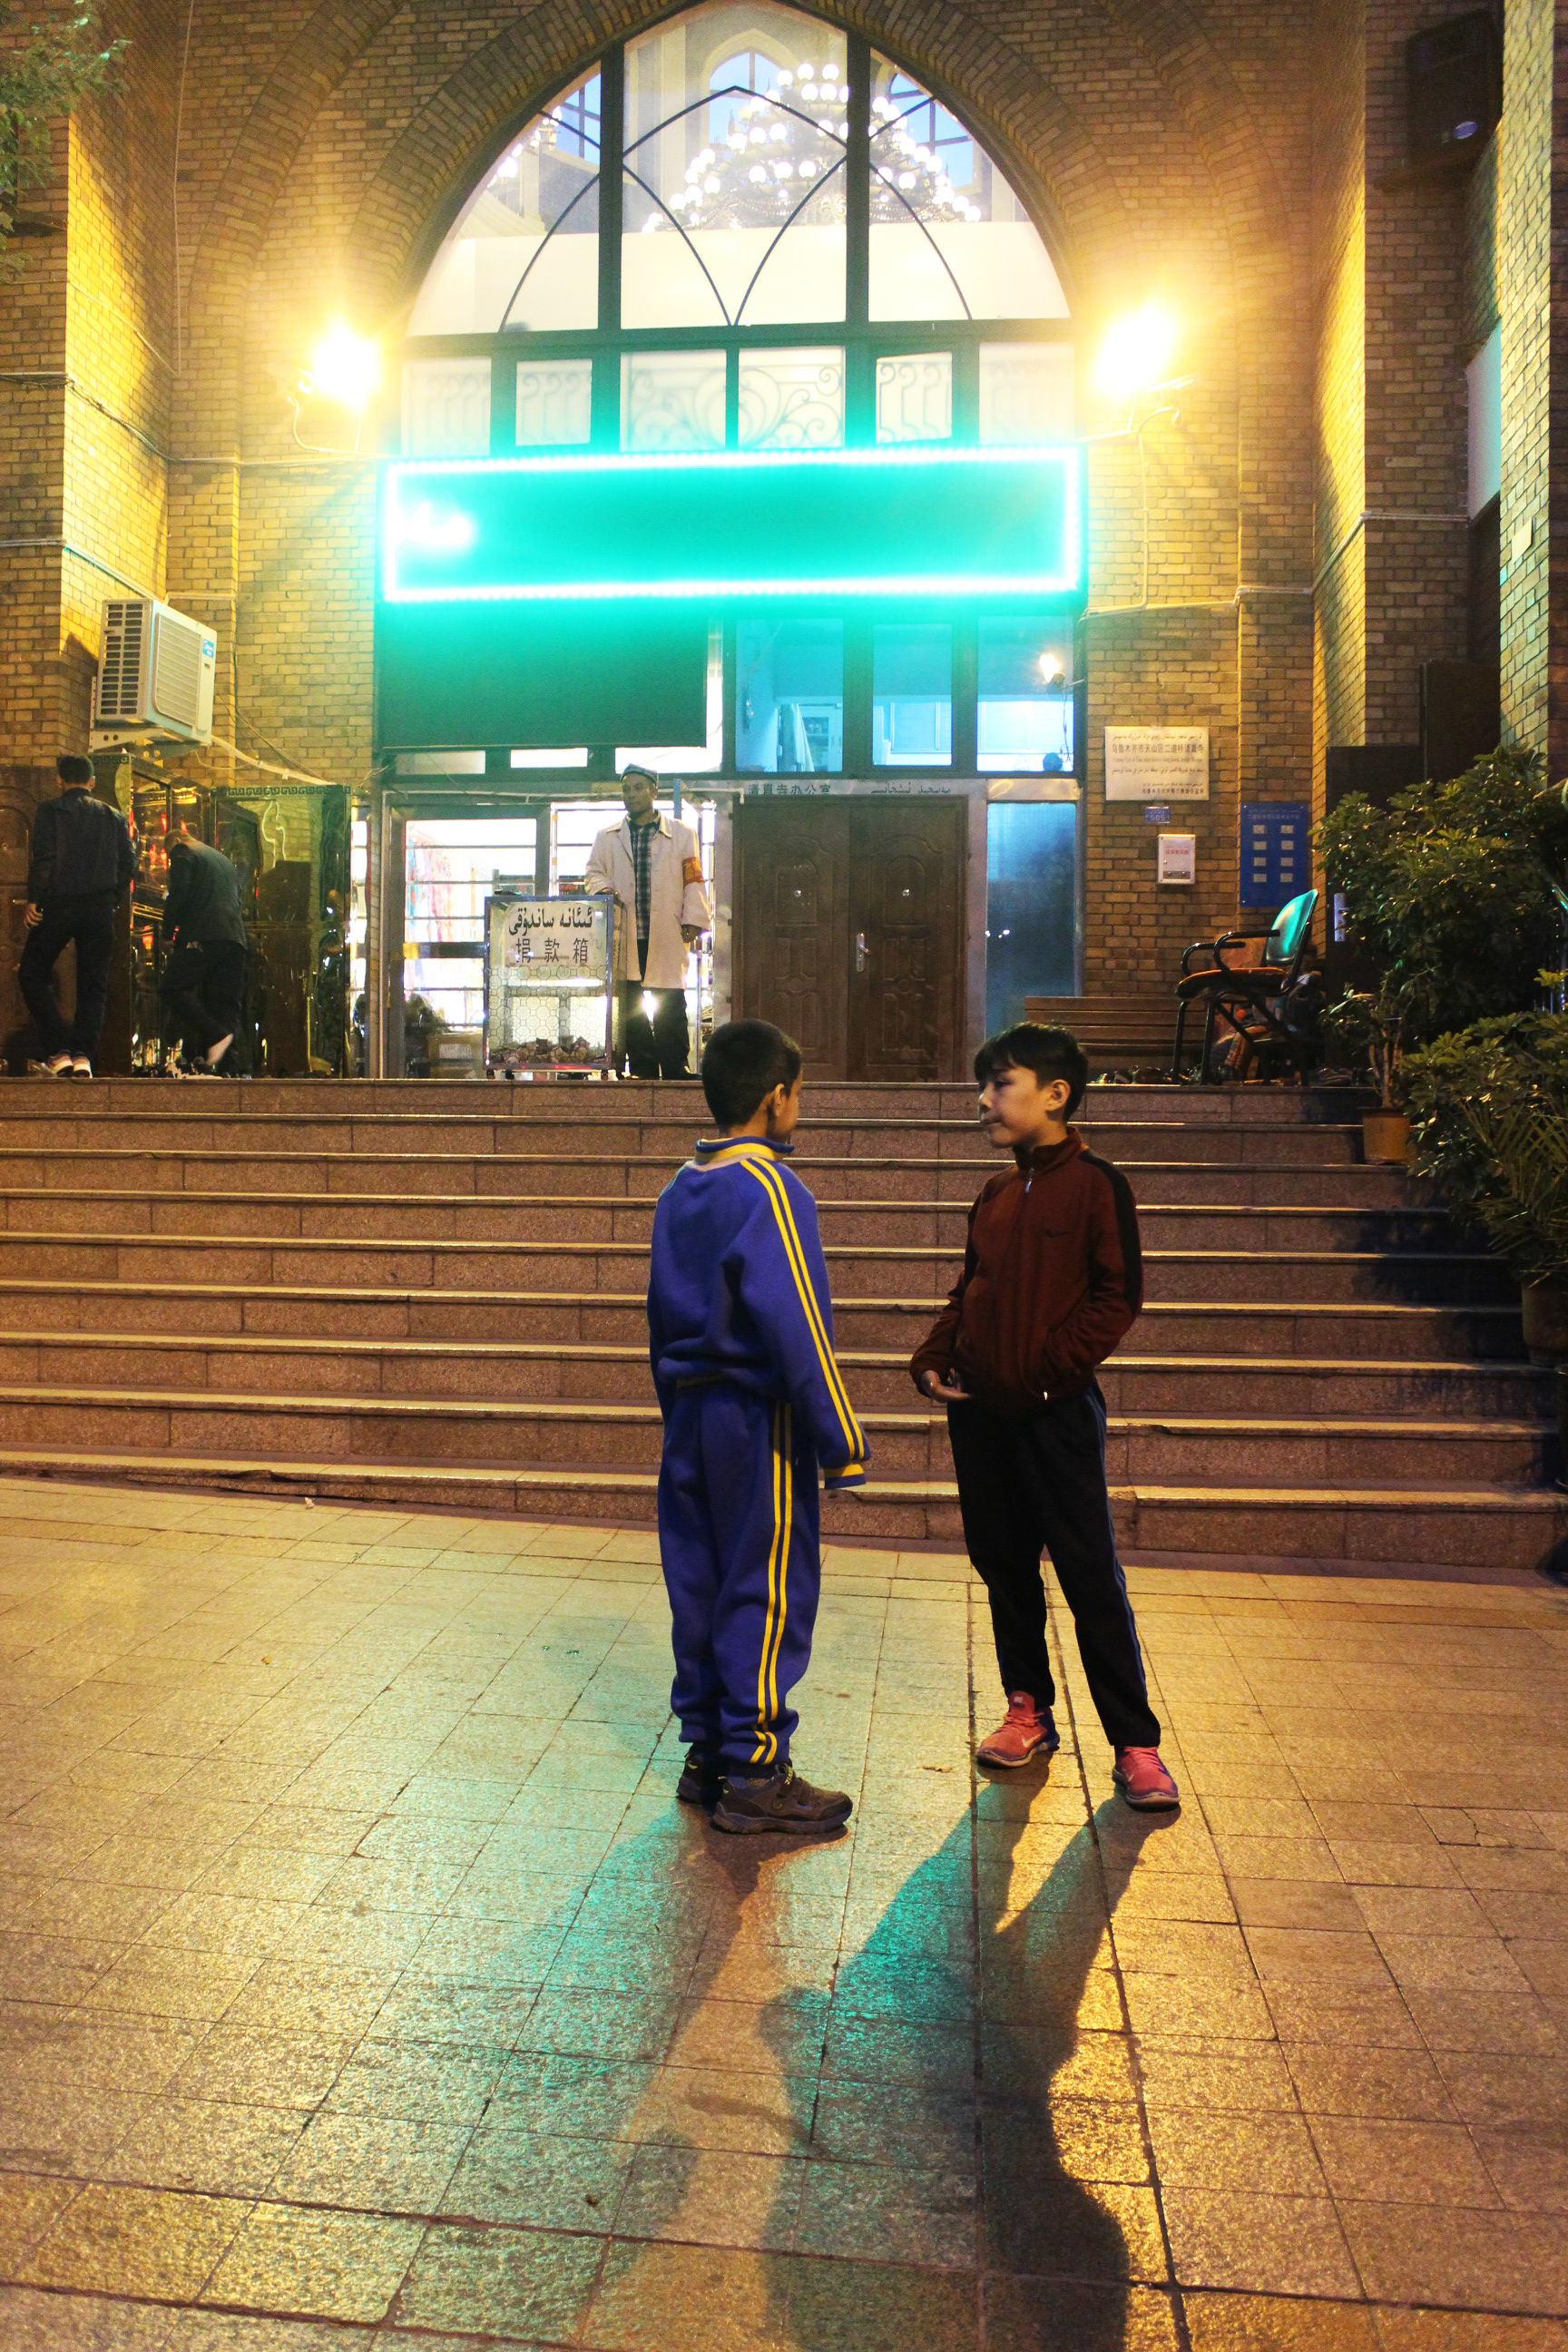 Outside a mosque in Urumqi, China.